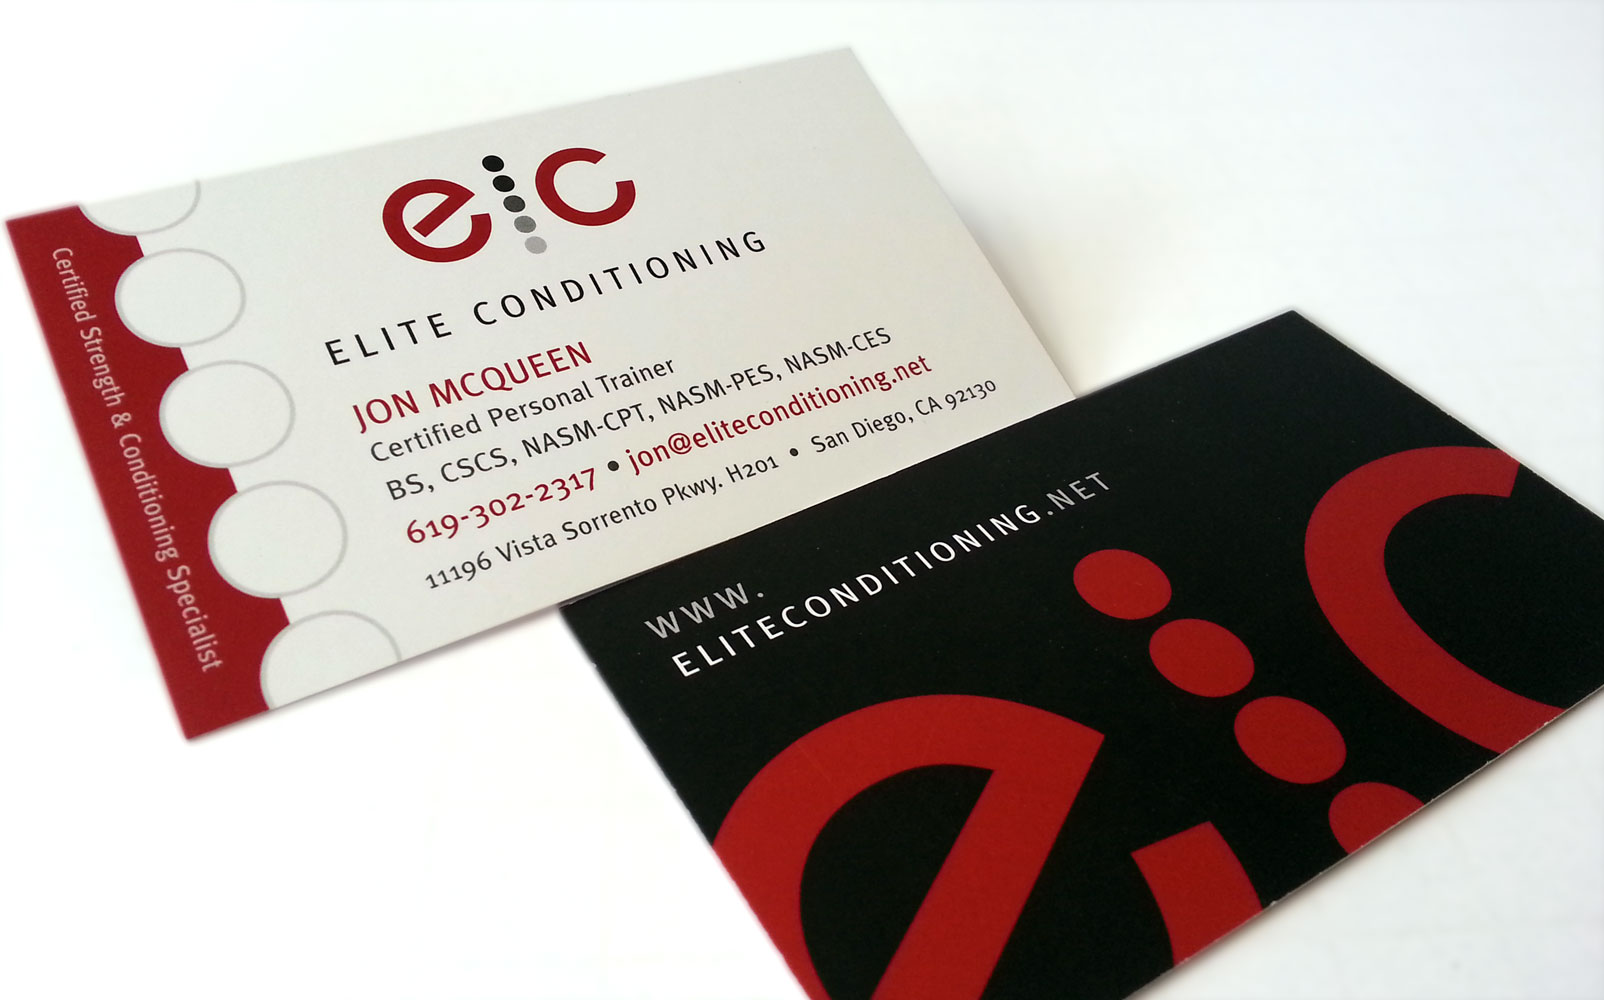 Elite conditioning business cards evolving door design elite conditioning business cards colourmoves